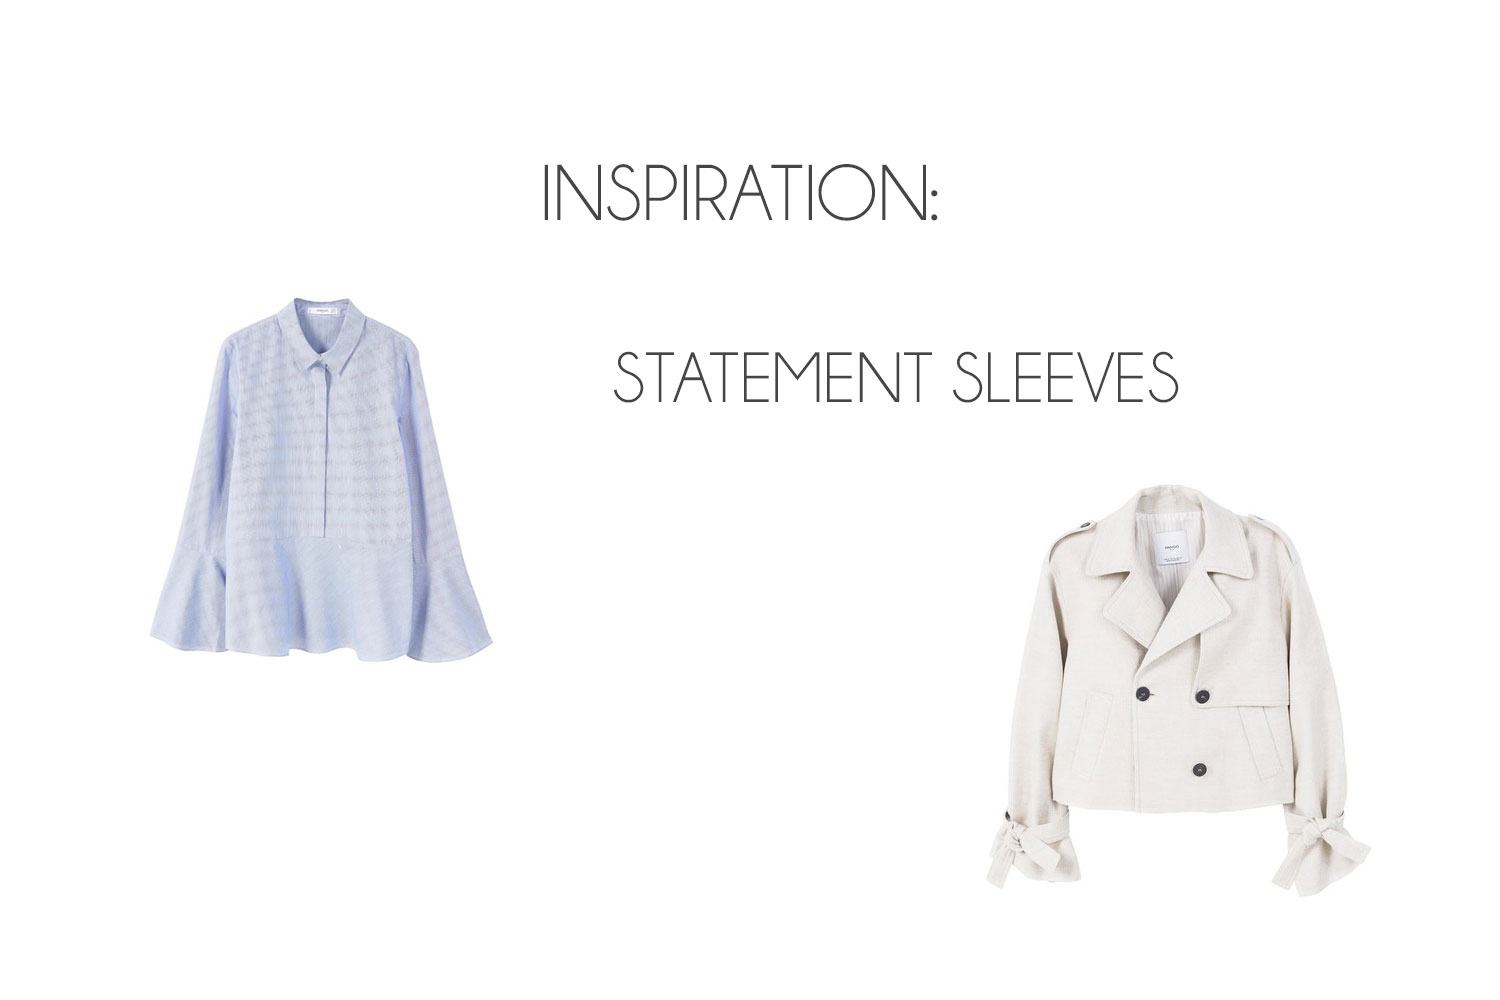 Inspiration: Statement Sleeves